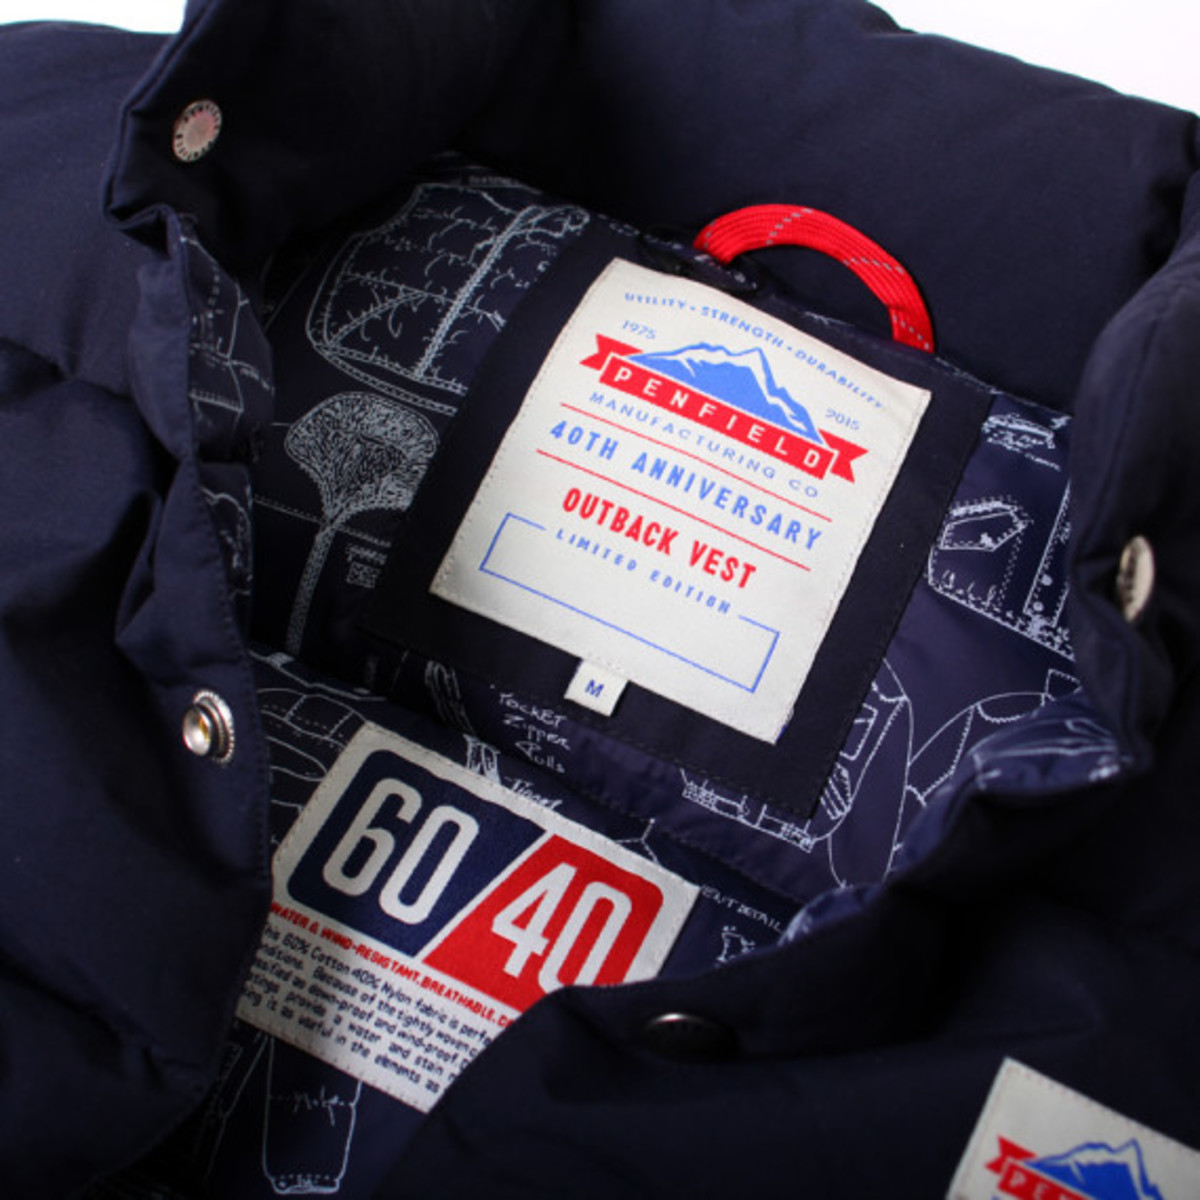 penfield-unveils-40th-anniversary-collection-06